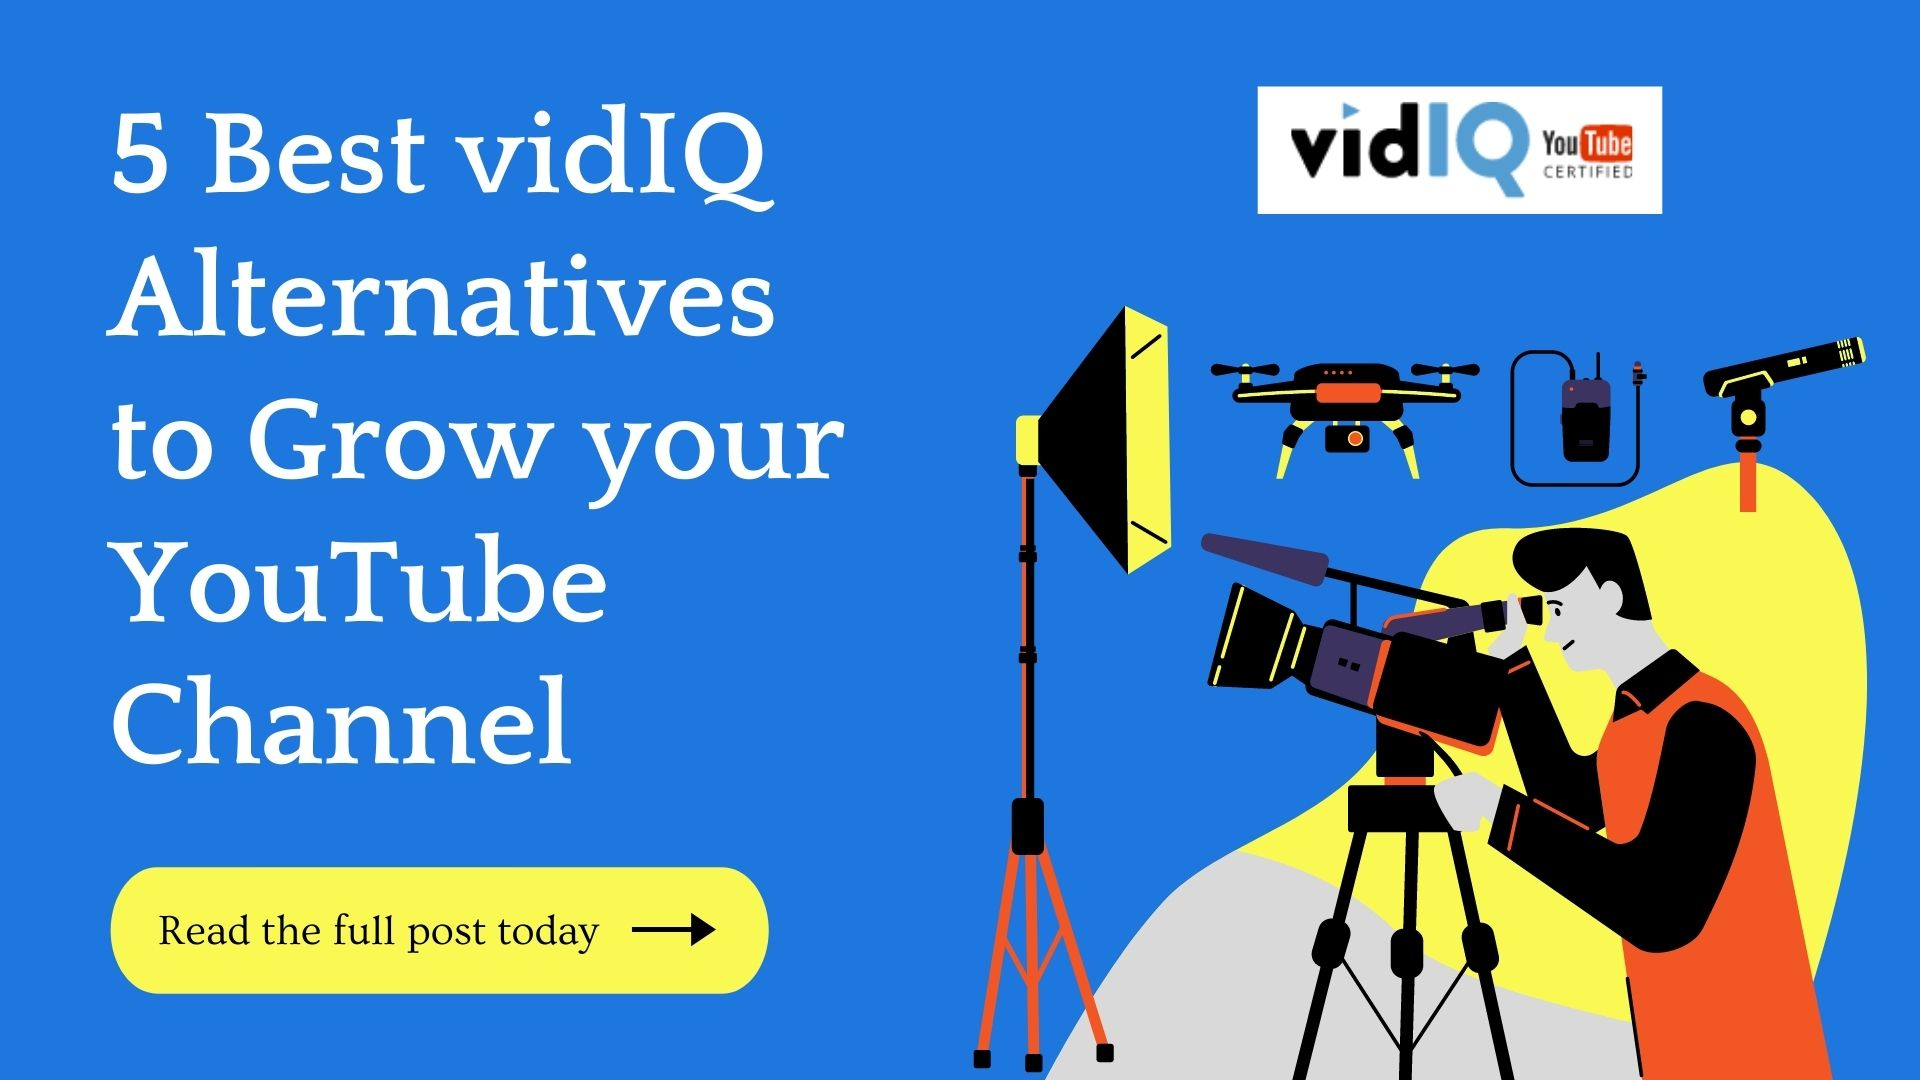 5 vidIQ Alternatives To Skyrocket Your YouTube Growth